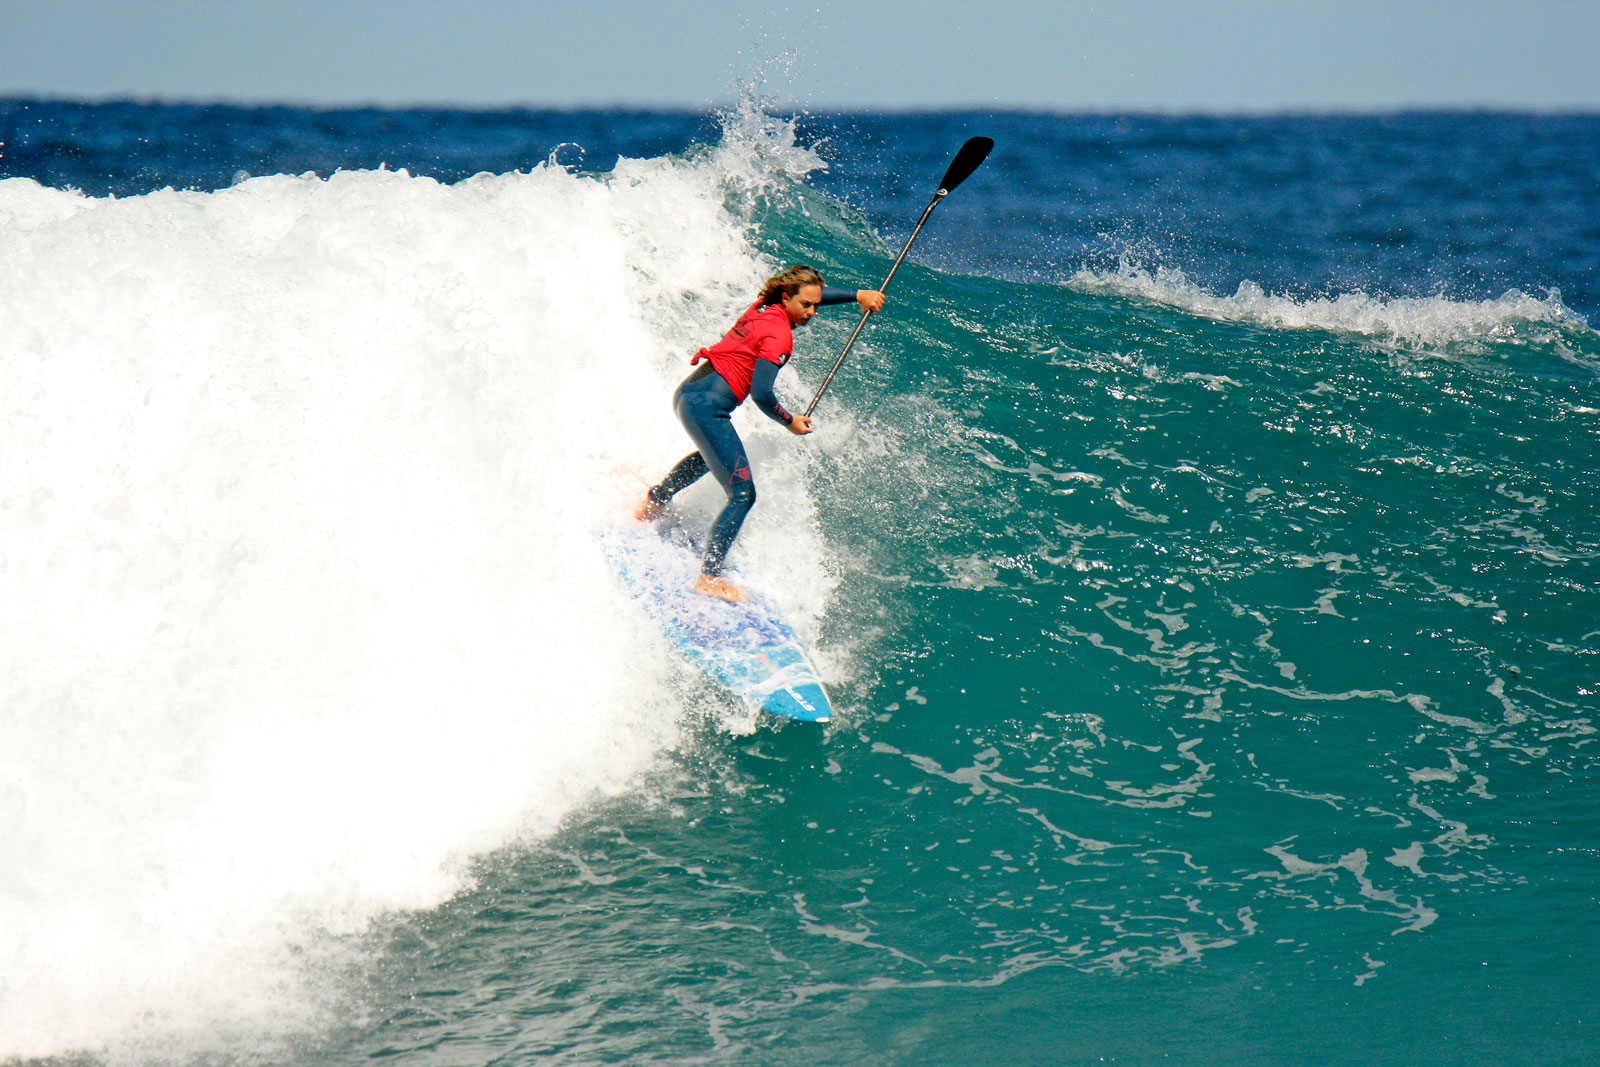 Starboard-SUP-Stand-Up-Paddle-surf-Shakira-Westdorp-Wins-2019-Rottnest-Island-SUP-Classic-Credits-Majeks-dropping-in-wave